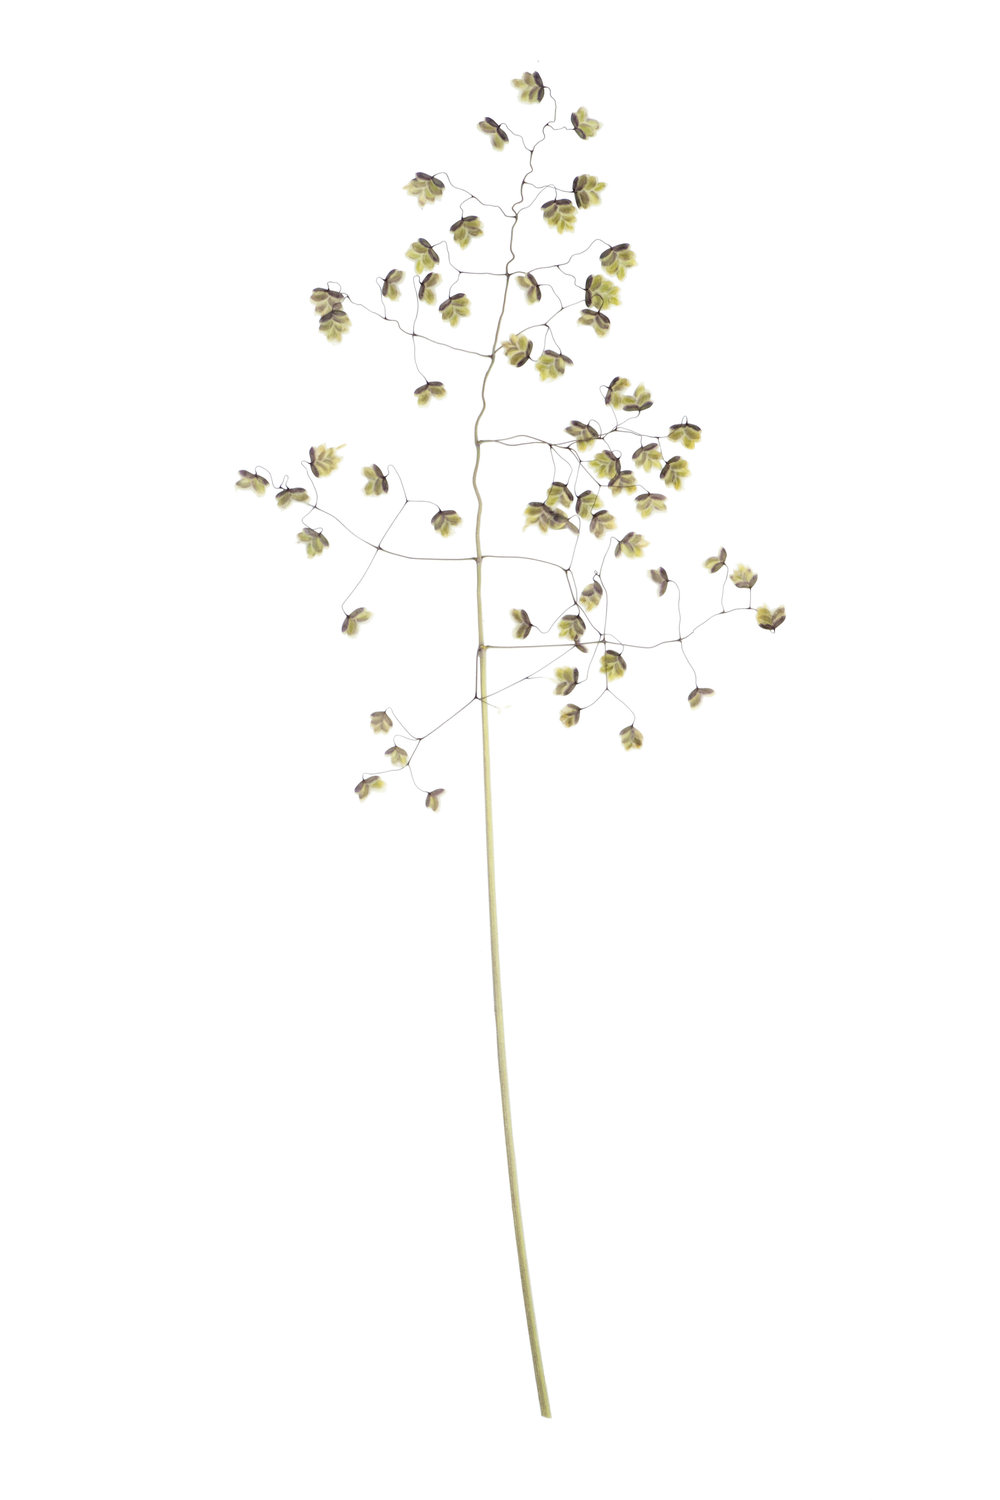 New! Quaking Grass / Briza media